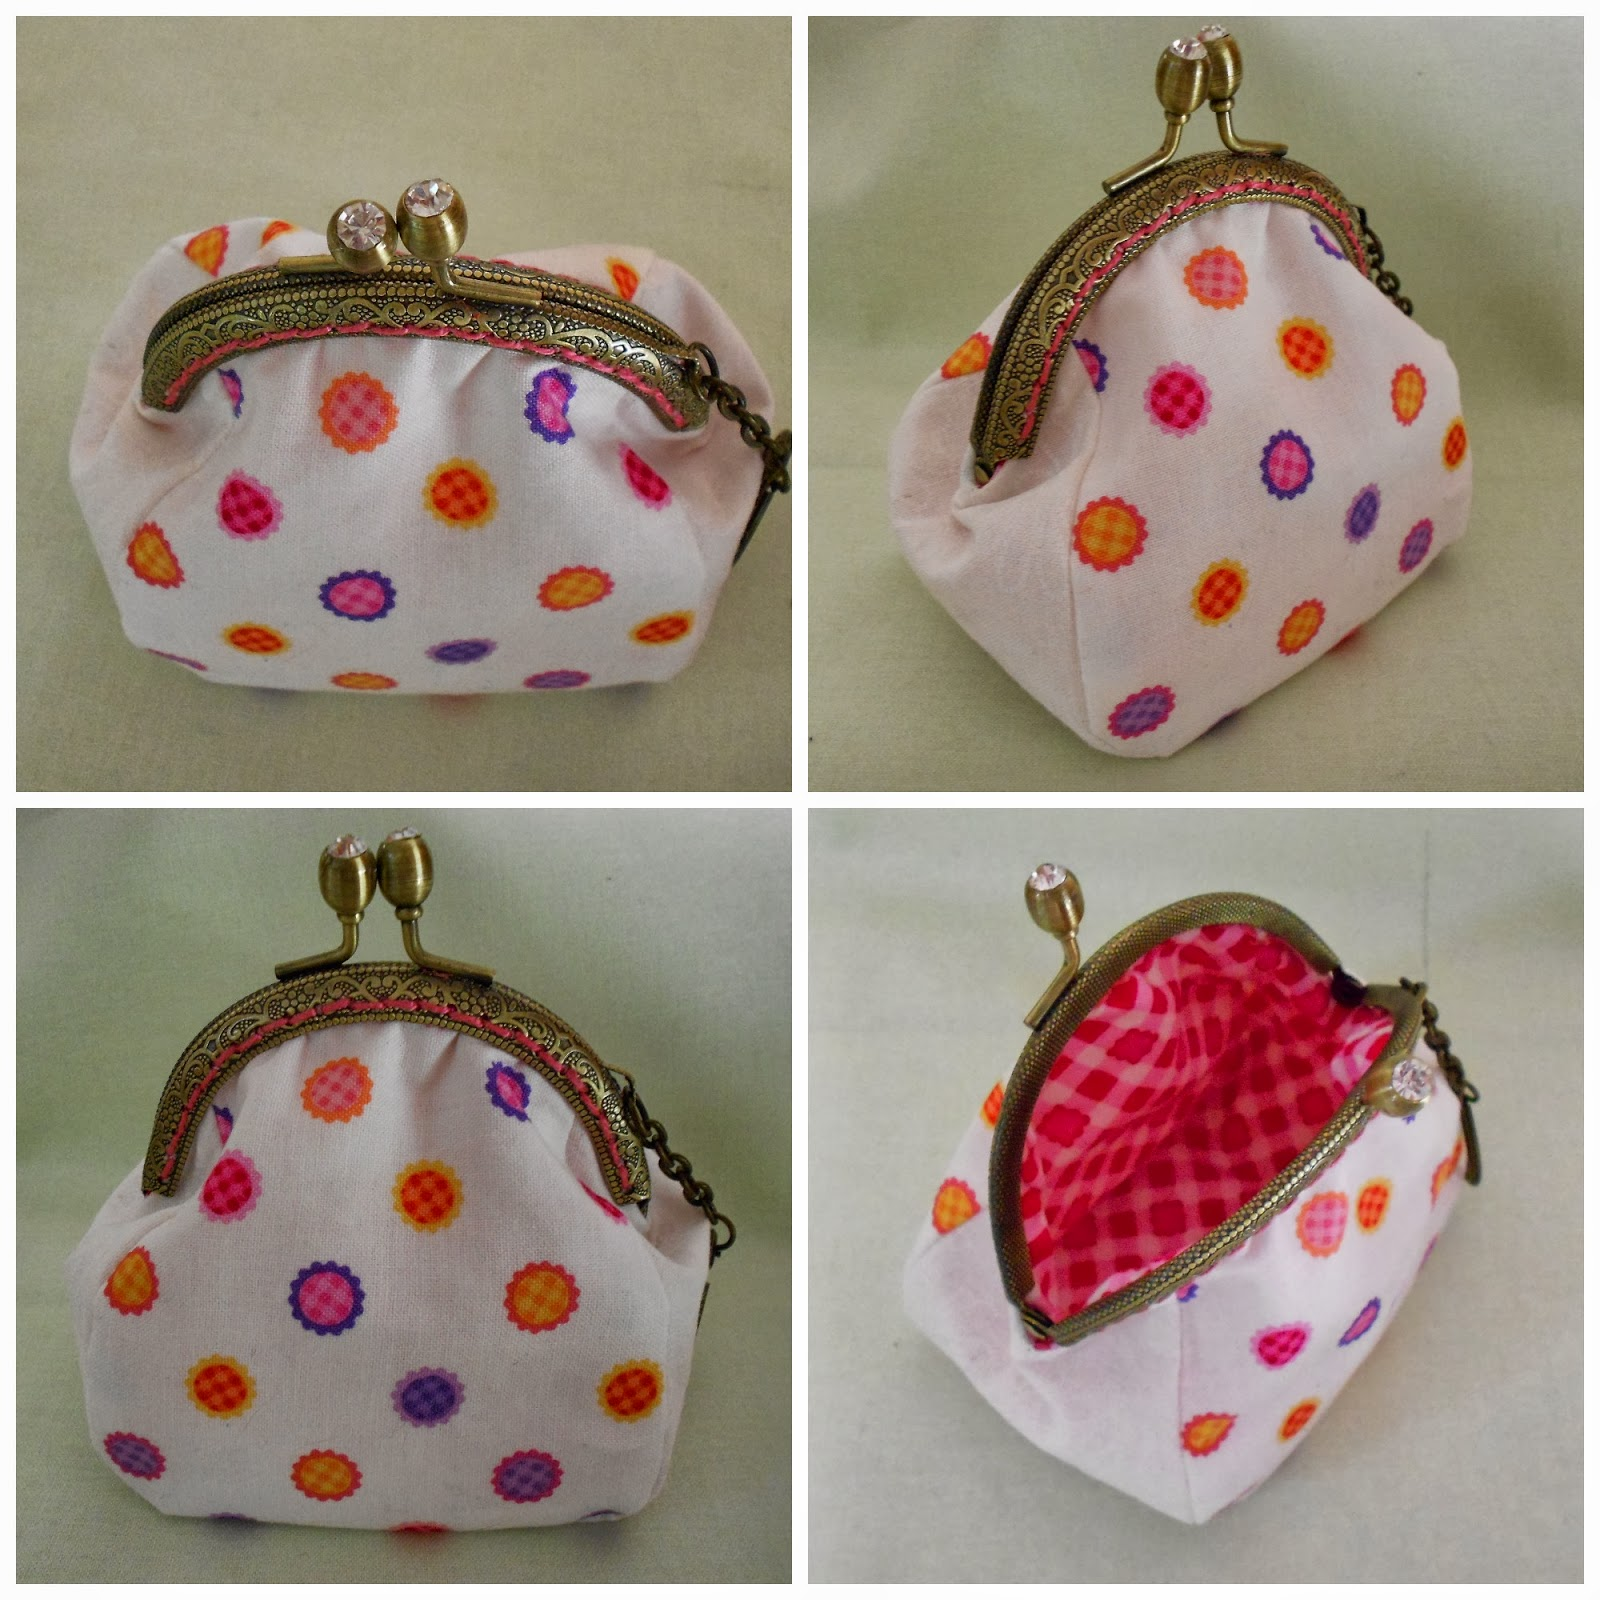 Val spiers sews a coin purse tutorial pdf and pattern a coin purse tutorial pdf and pattern jeuxipadfo Choice Image